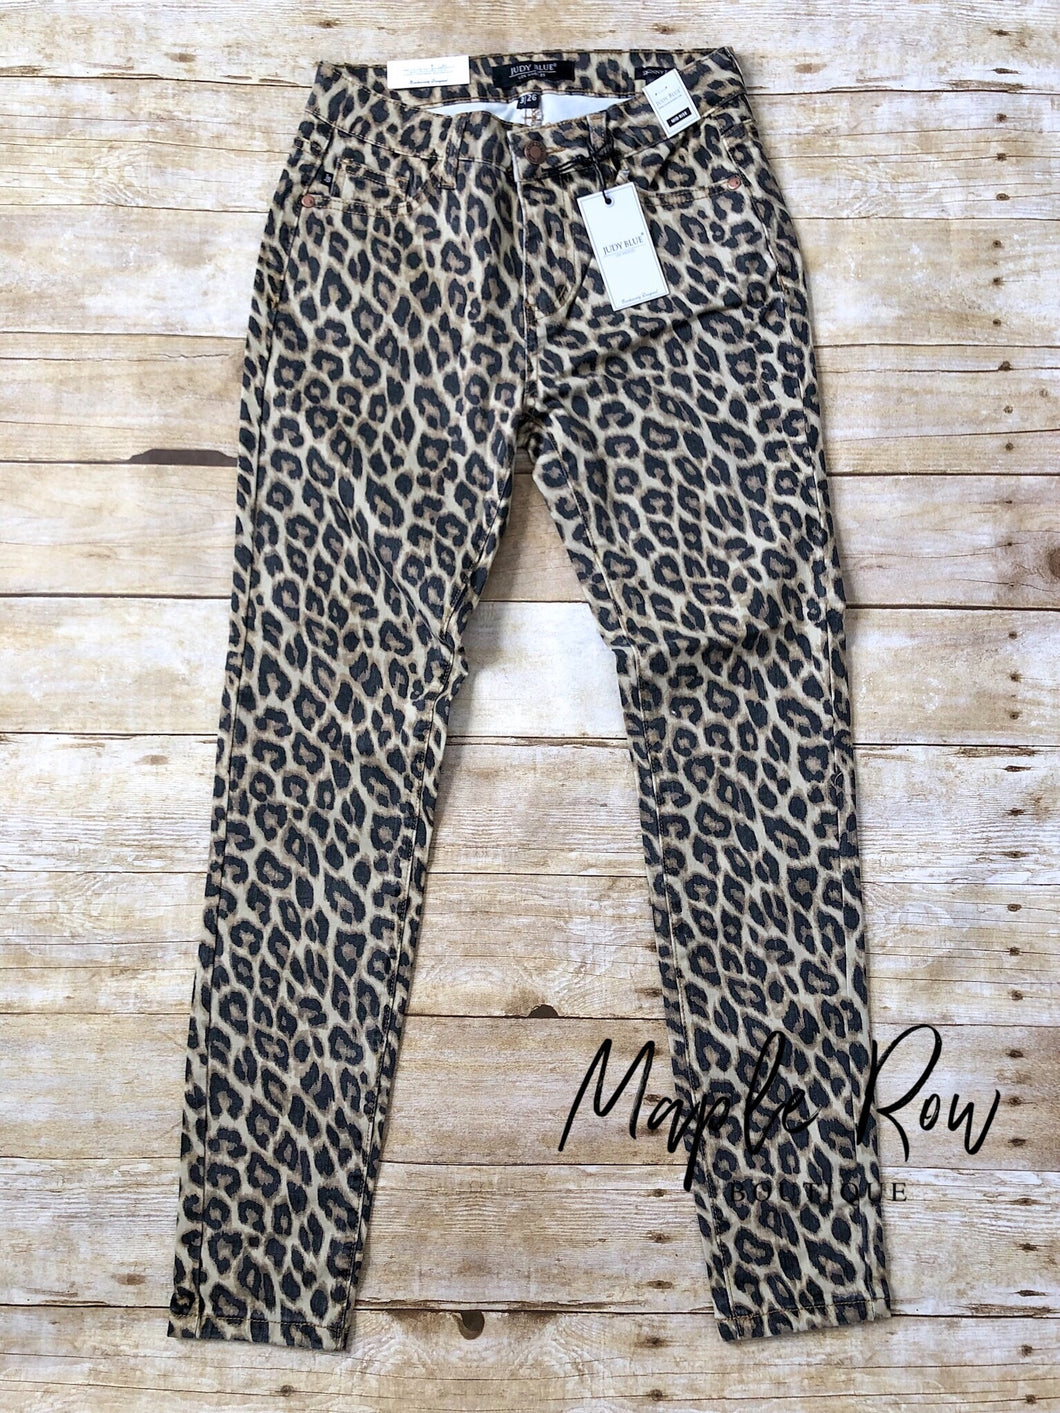 Leopard Judy Blue Denim - Maple Row Boutique